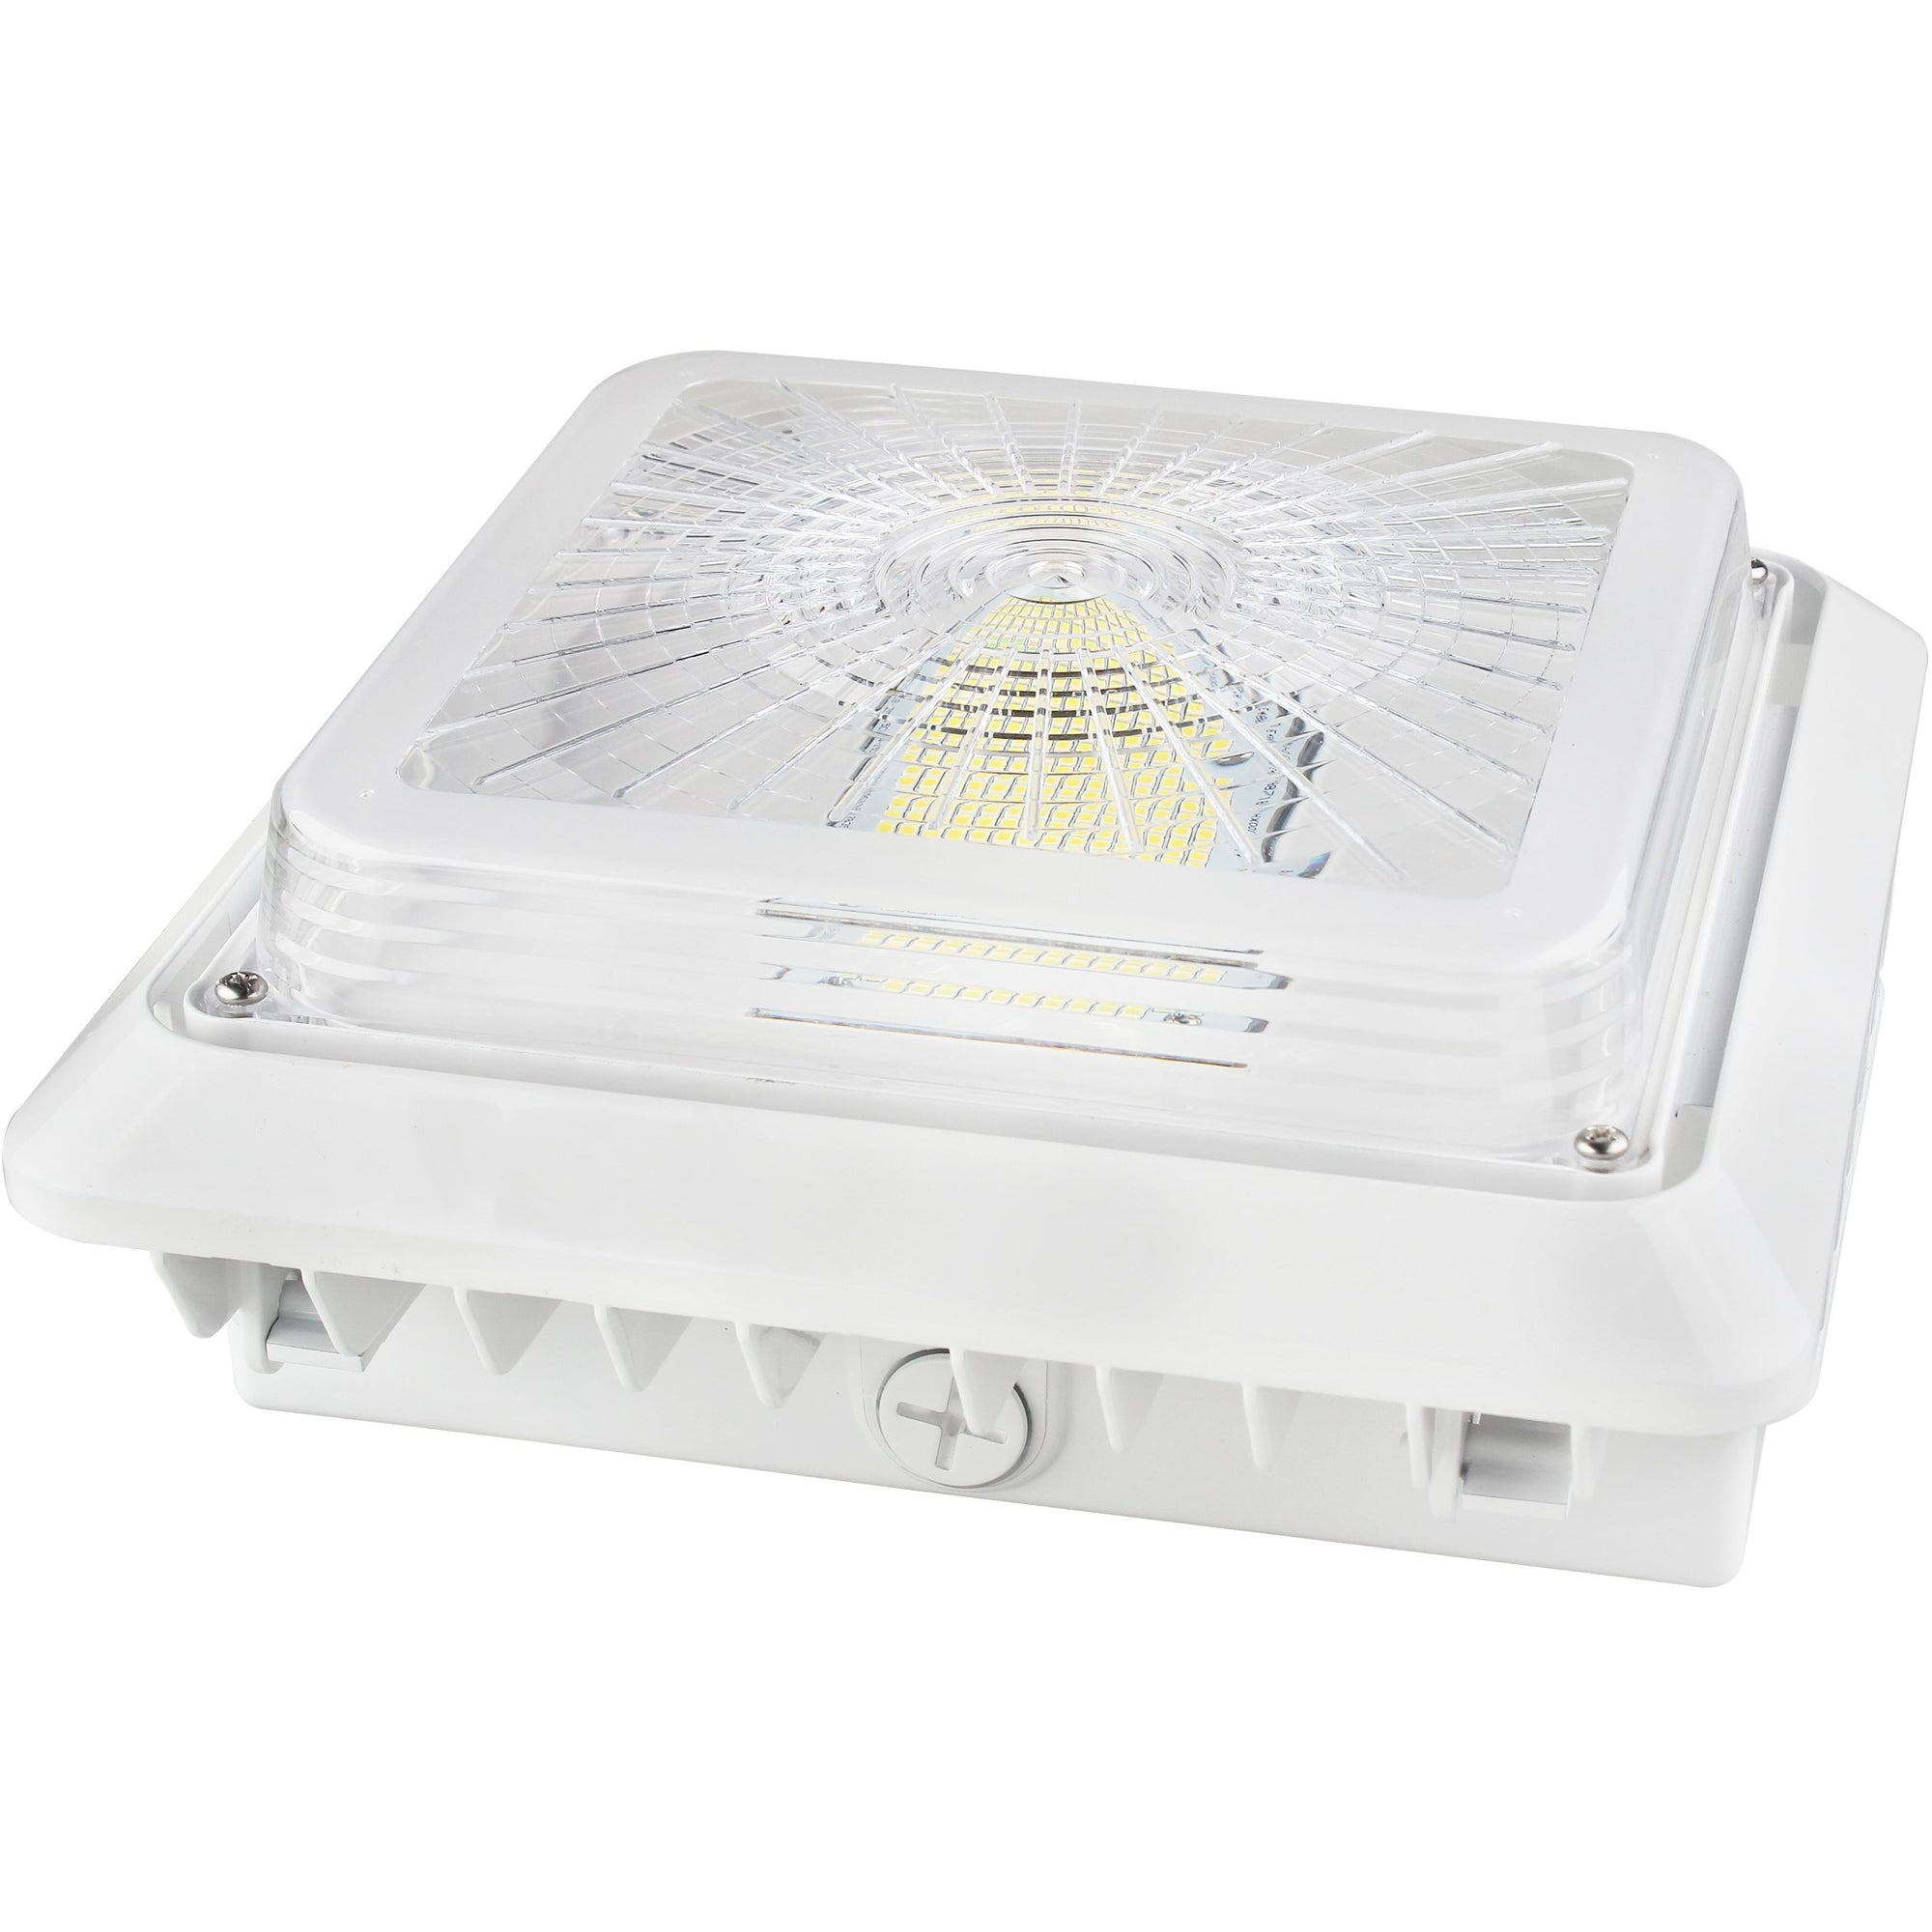 55W LED CANOPY LIGHT-WHITE 'DLC' IP65 - CommerciaLight Distributors